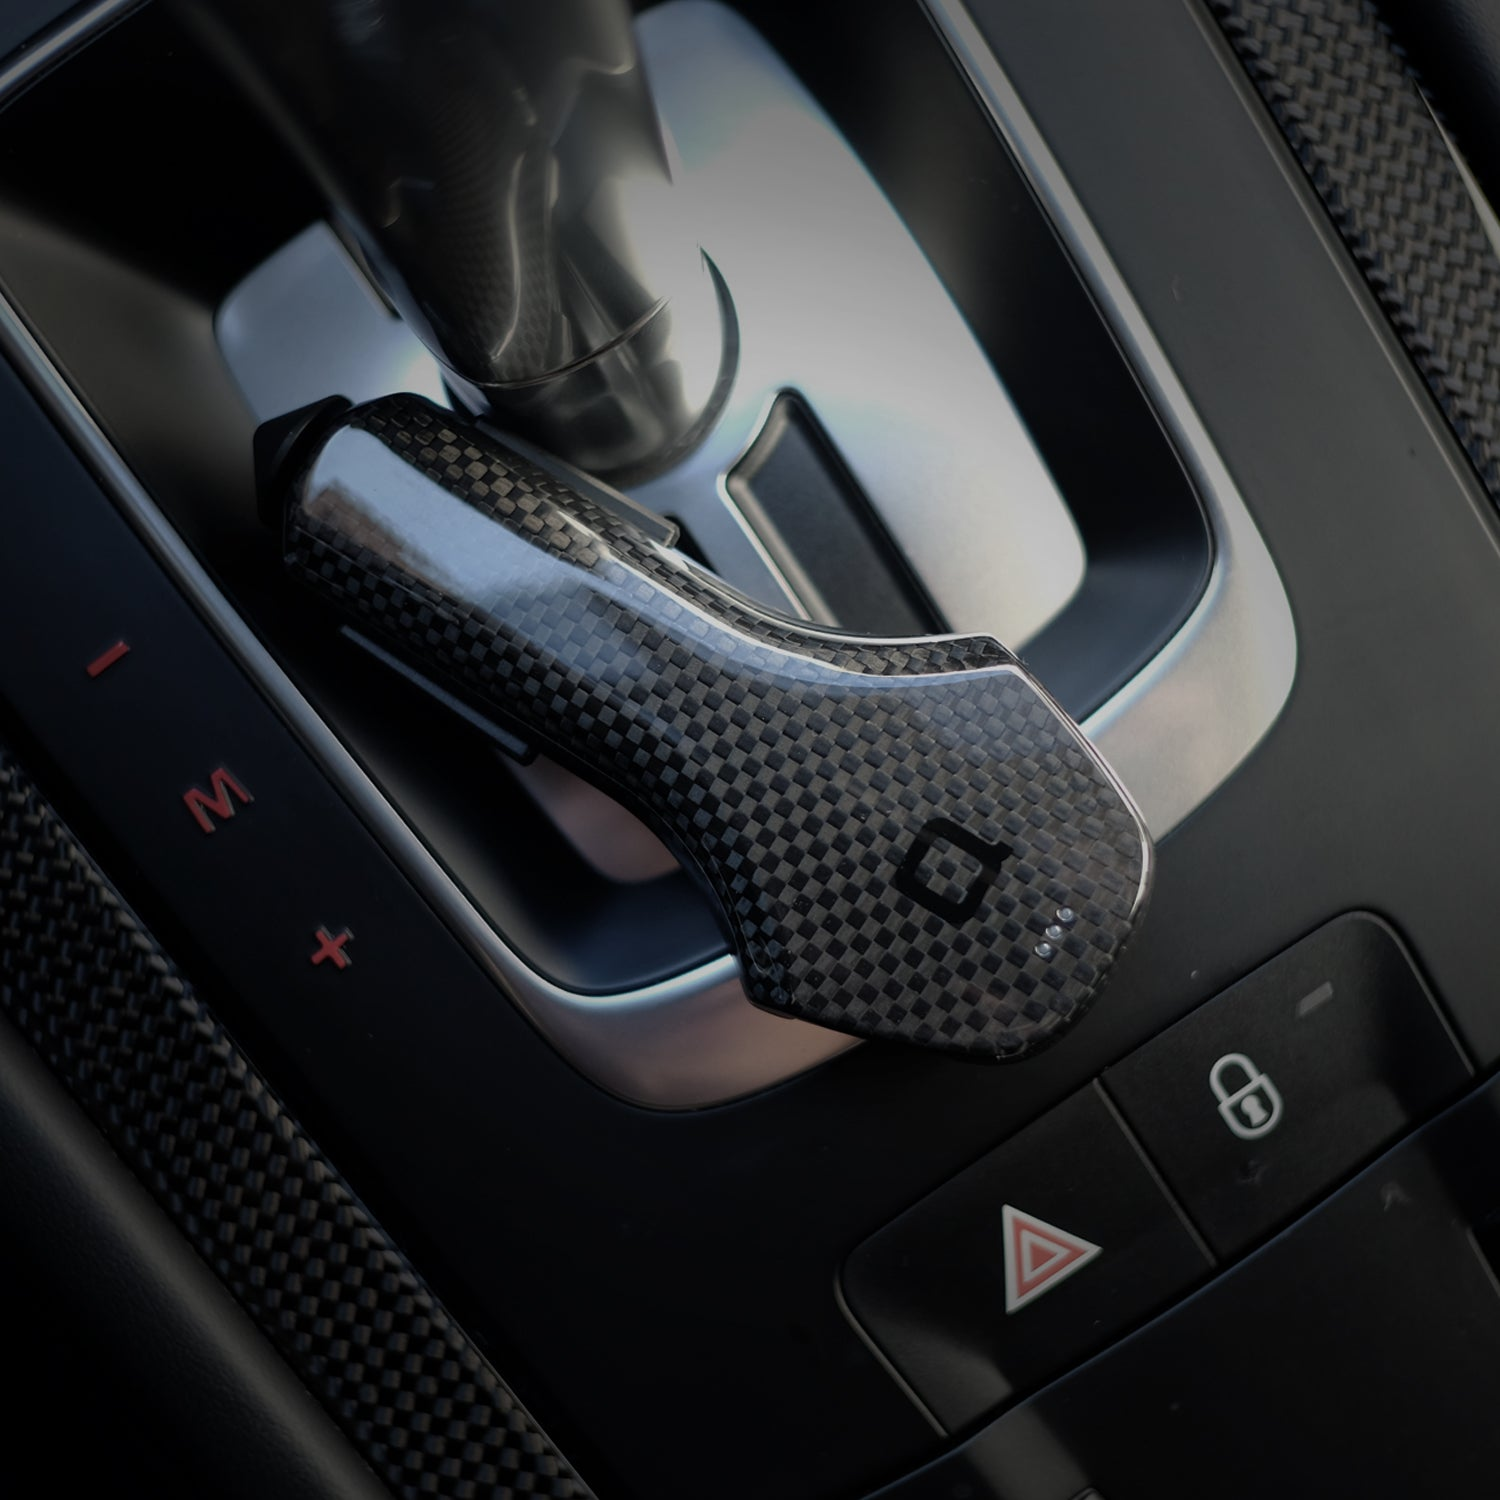 ZUS Smart Car Charger Carbon Fiber Edition | nonda | Today's